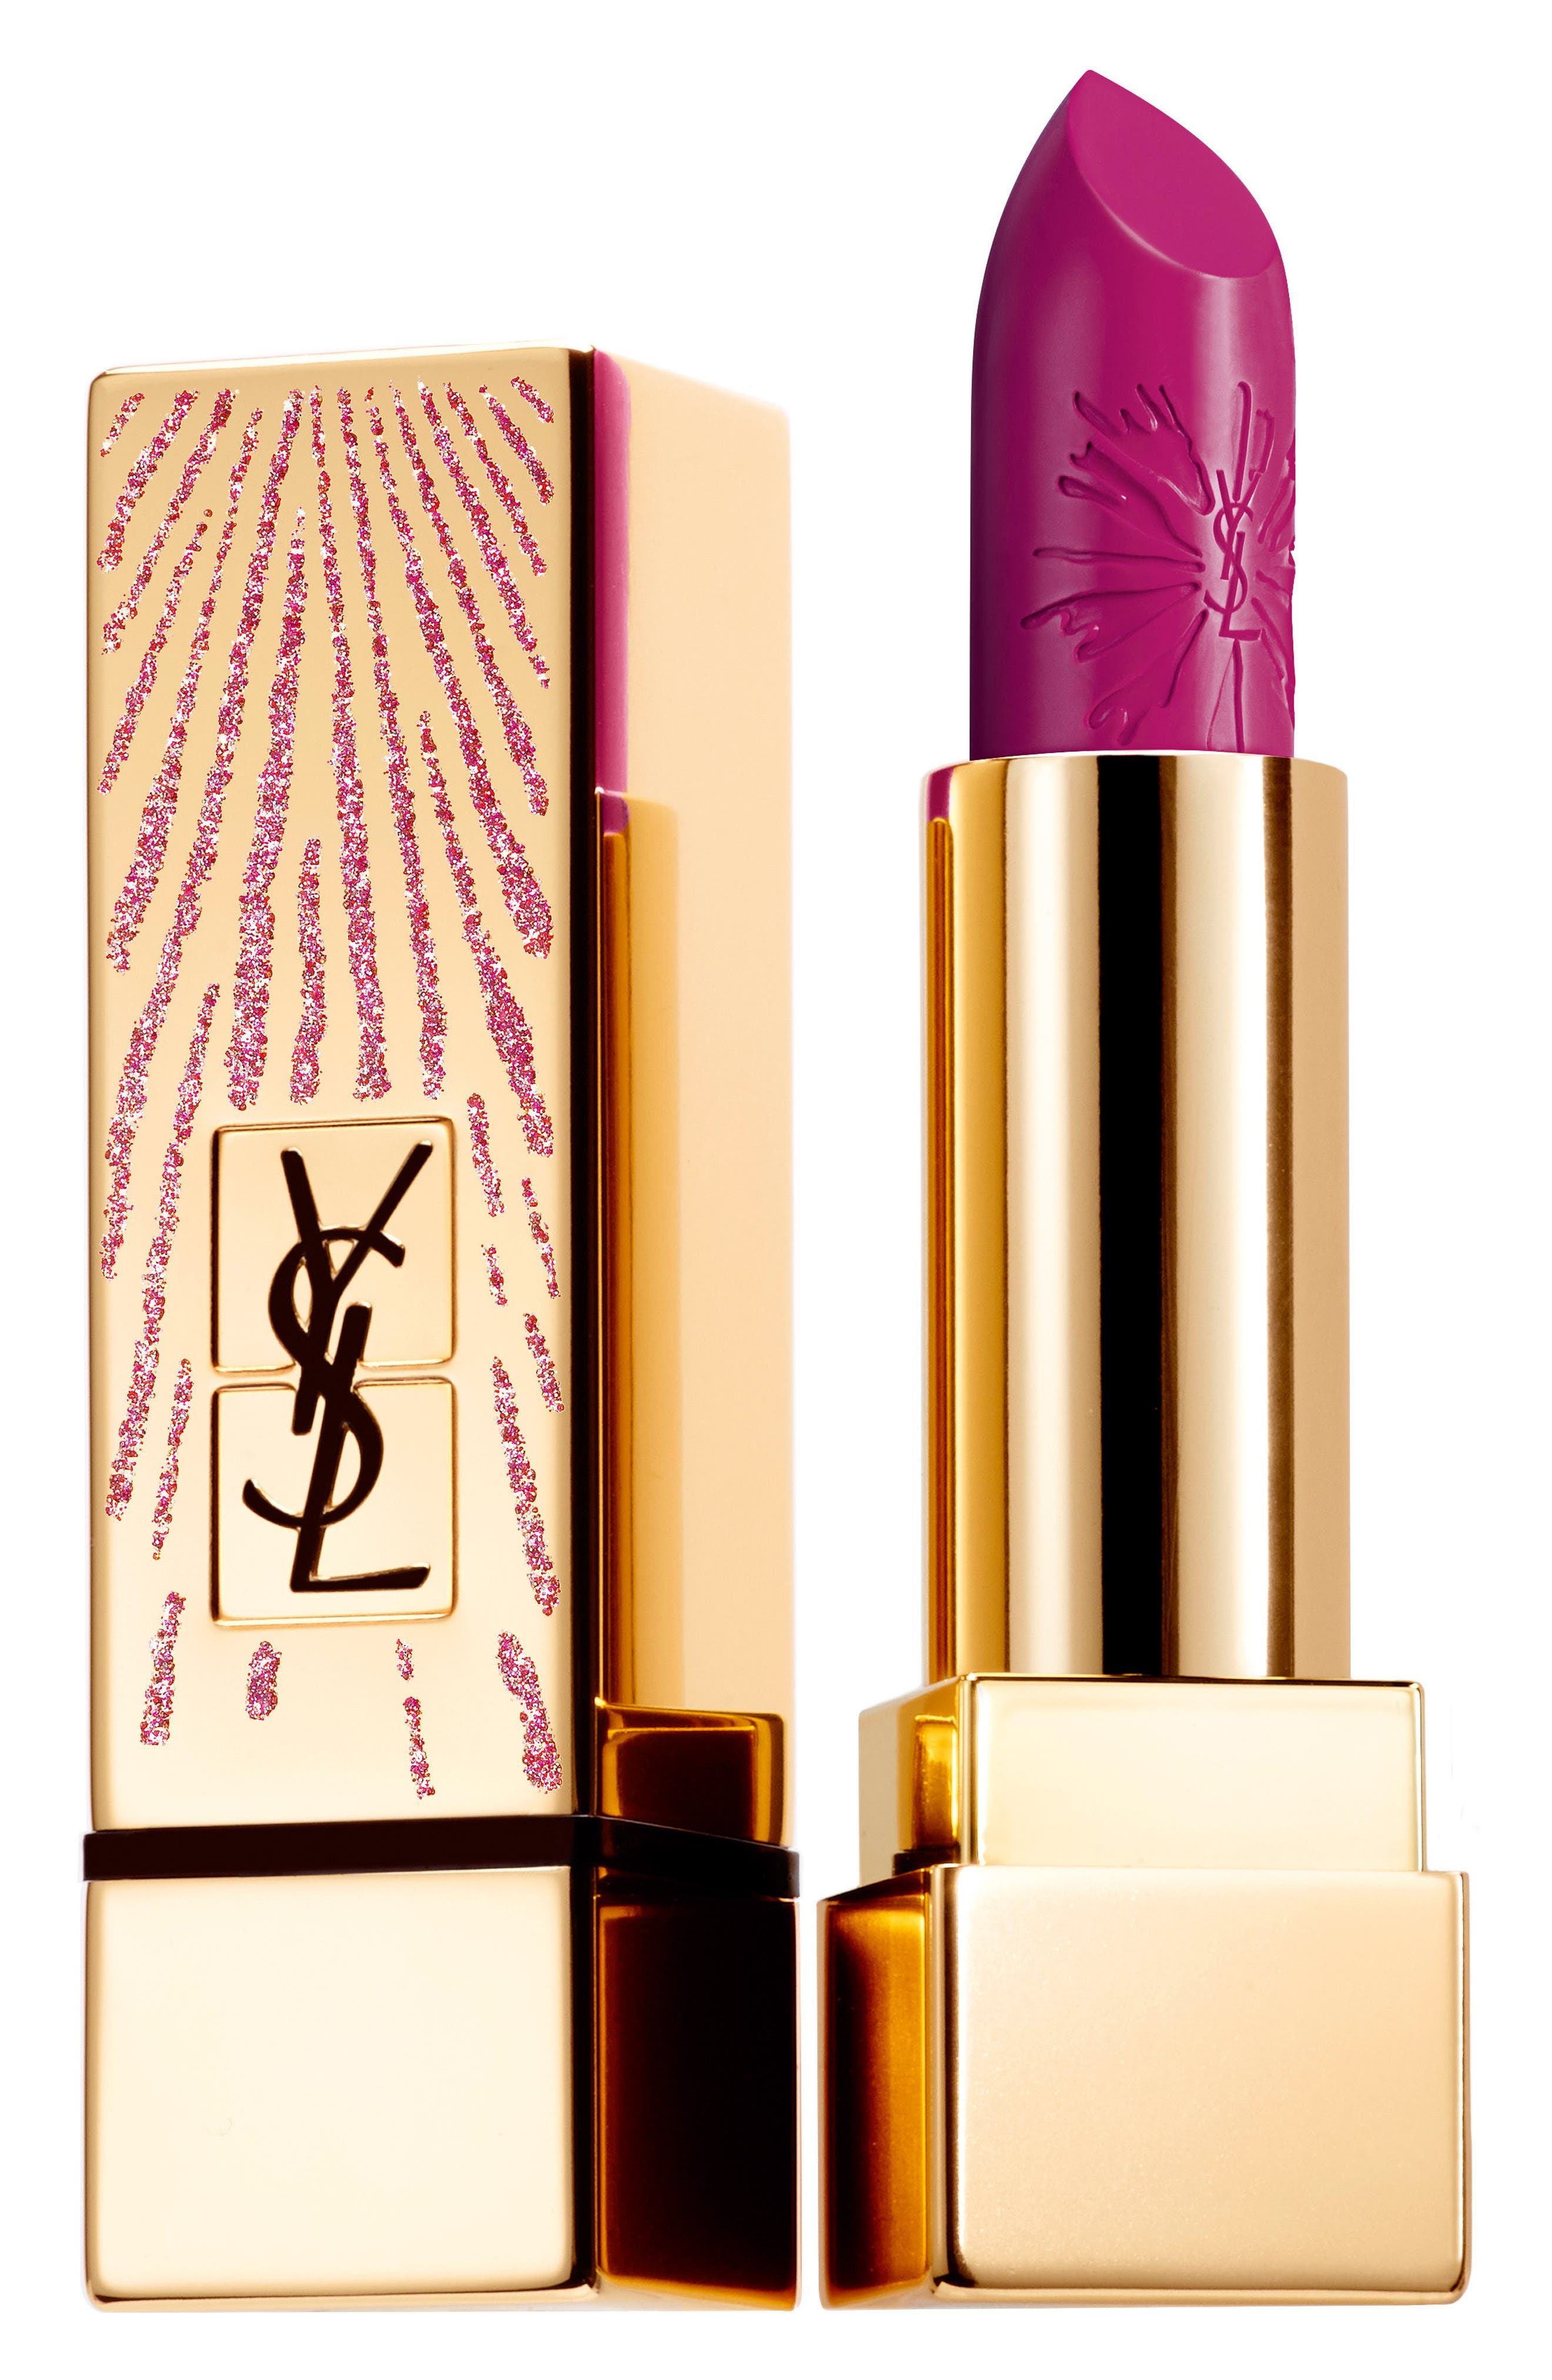 Yves Saint Laurent Rouge Pur Couture Dazzling Lights Lipstick (Buy 2, Get 1 Free)